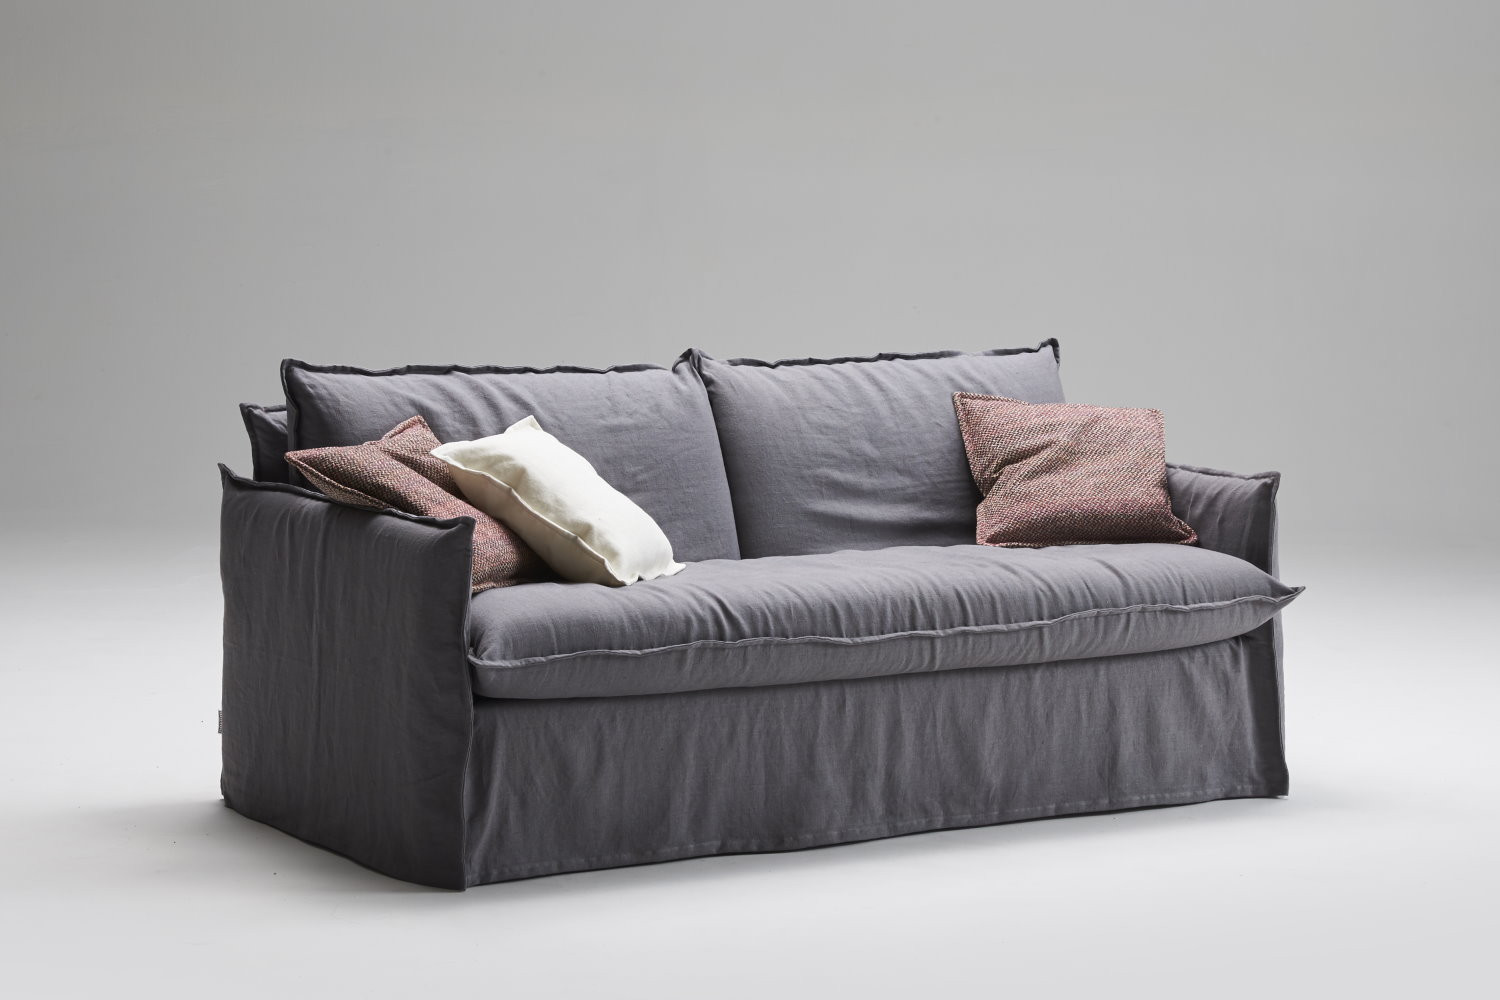 Clarke sofa bed for a daily use for Sofa bed no mattress